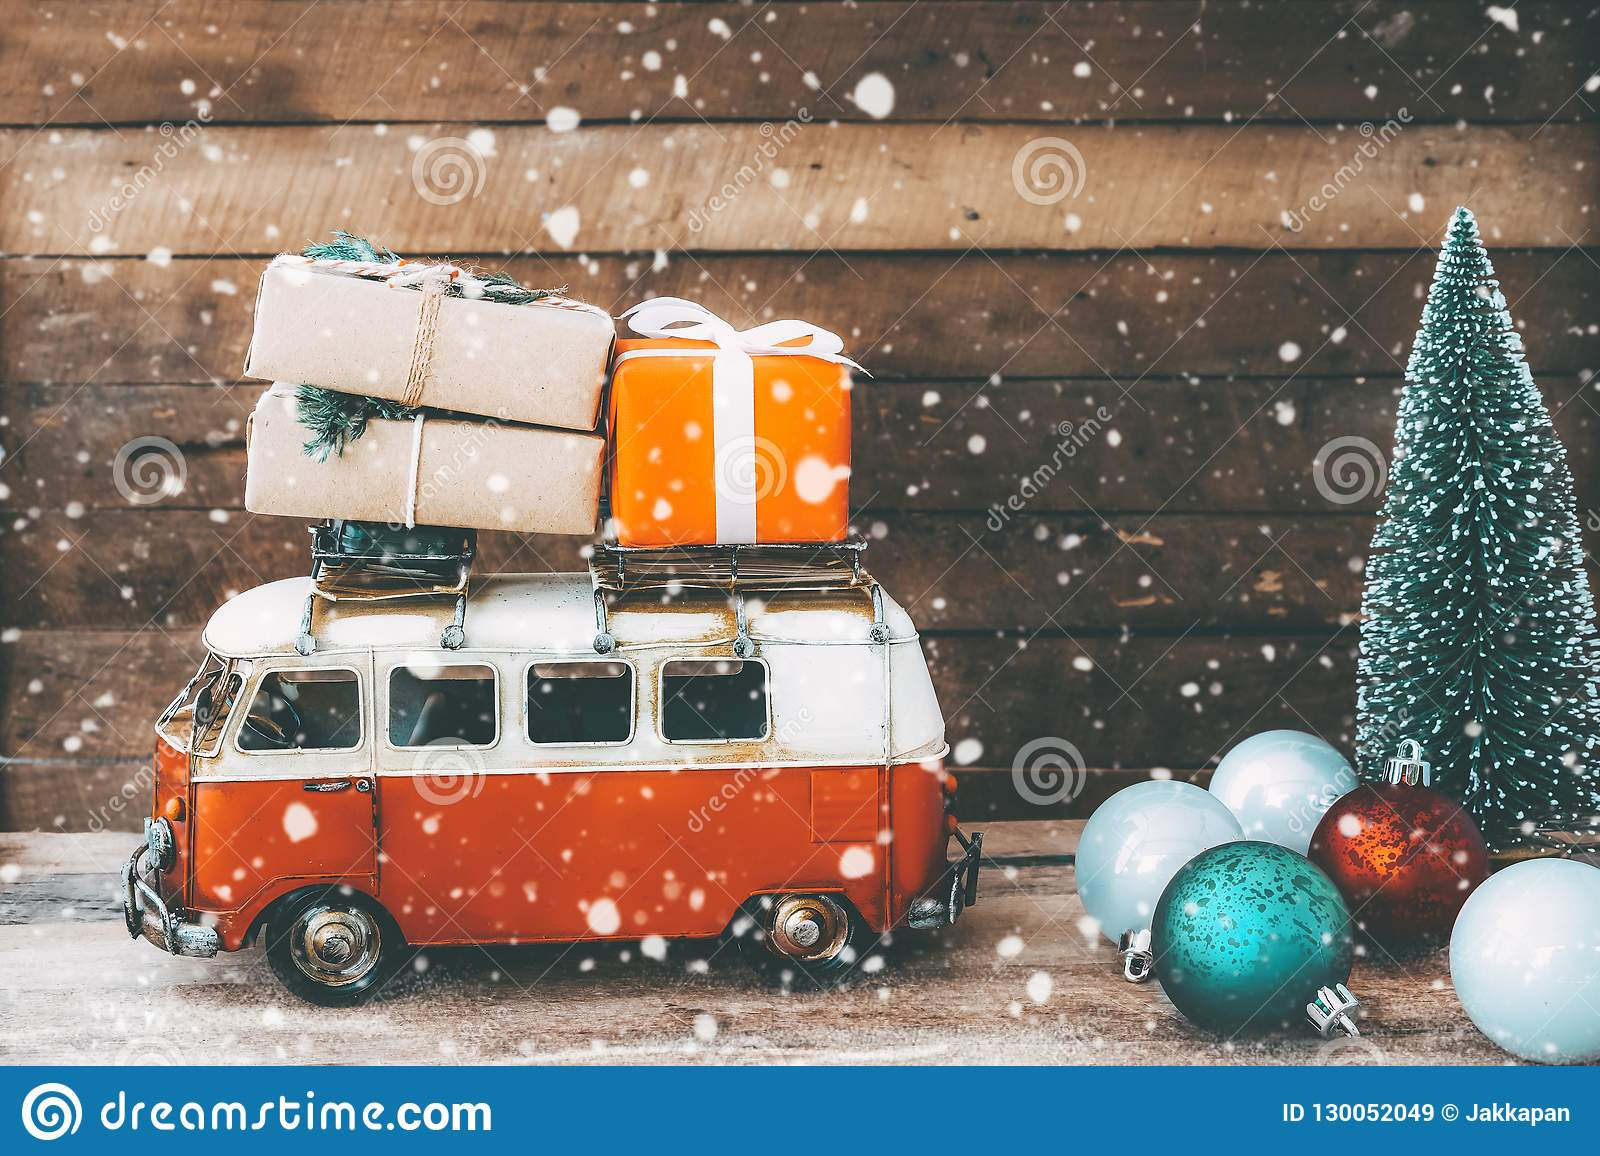 vintage merry christmas postcard background miniature antique car carrying presents gift box roof christmas tree snowy 130052049